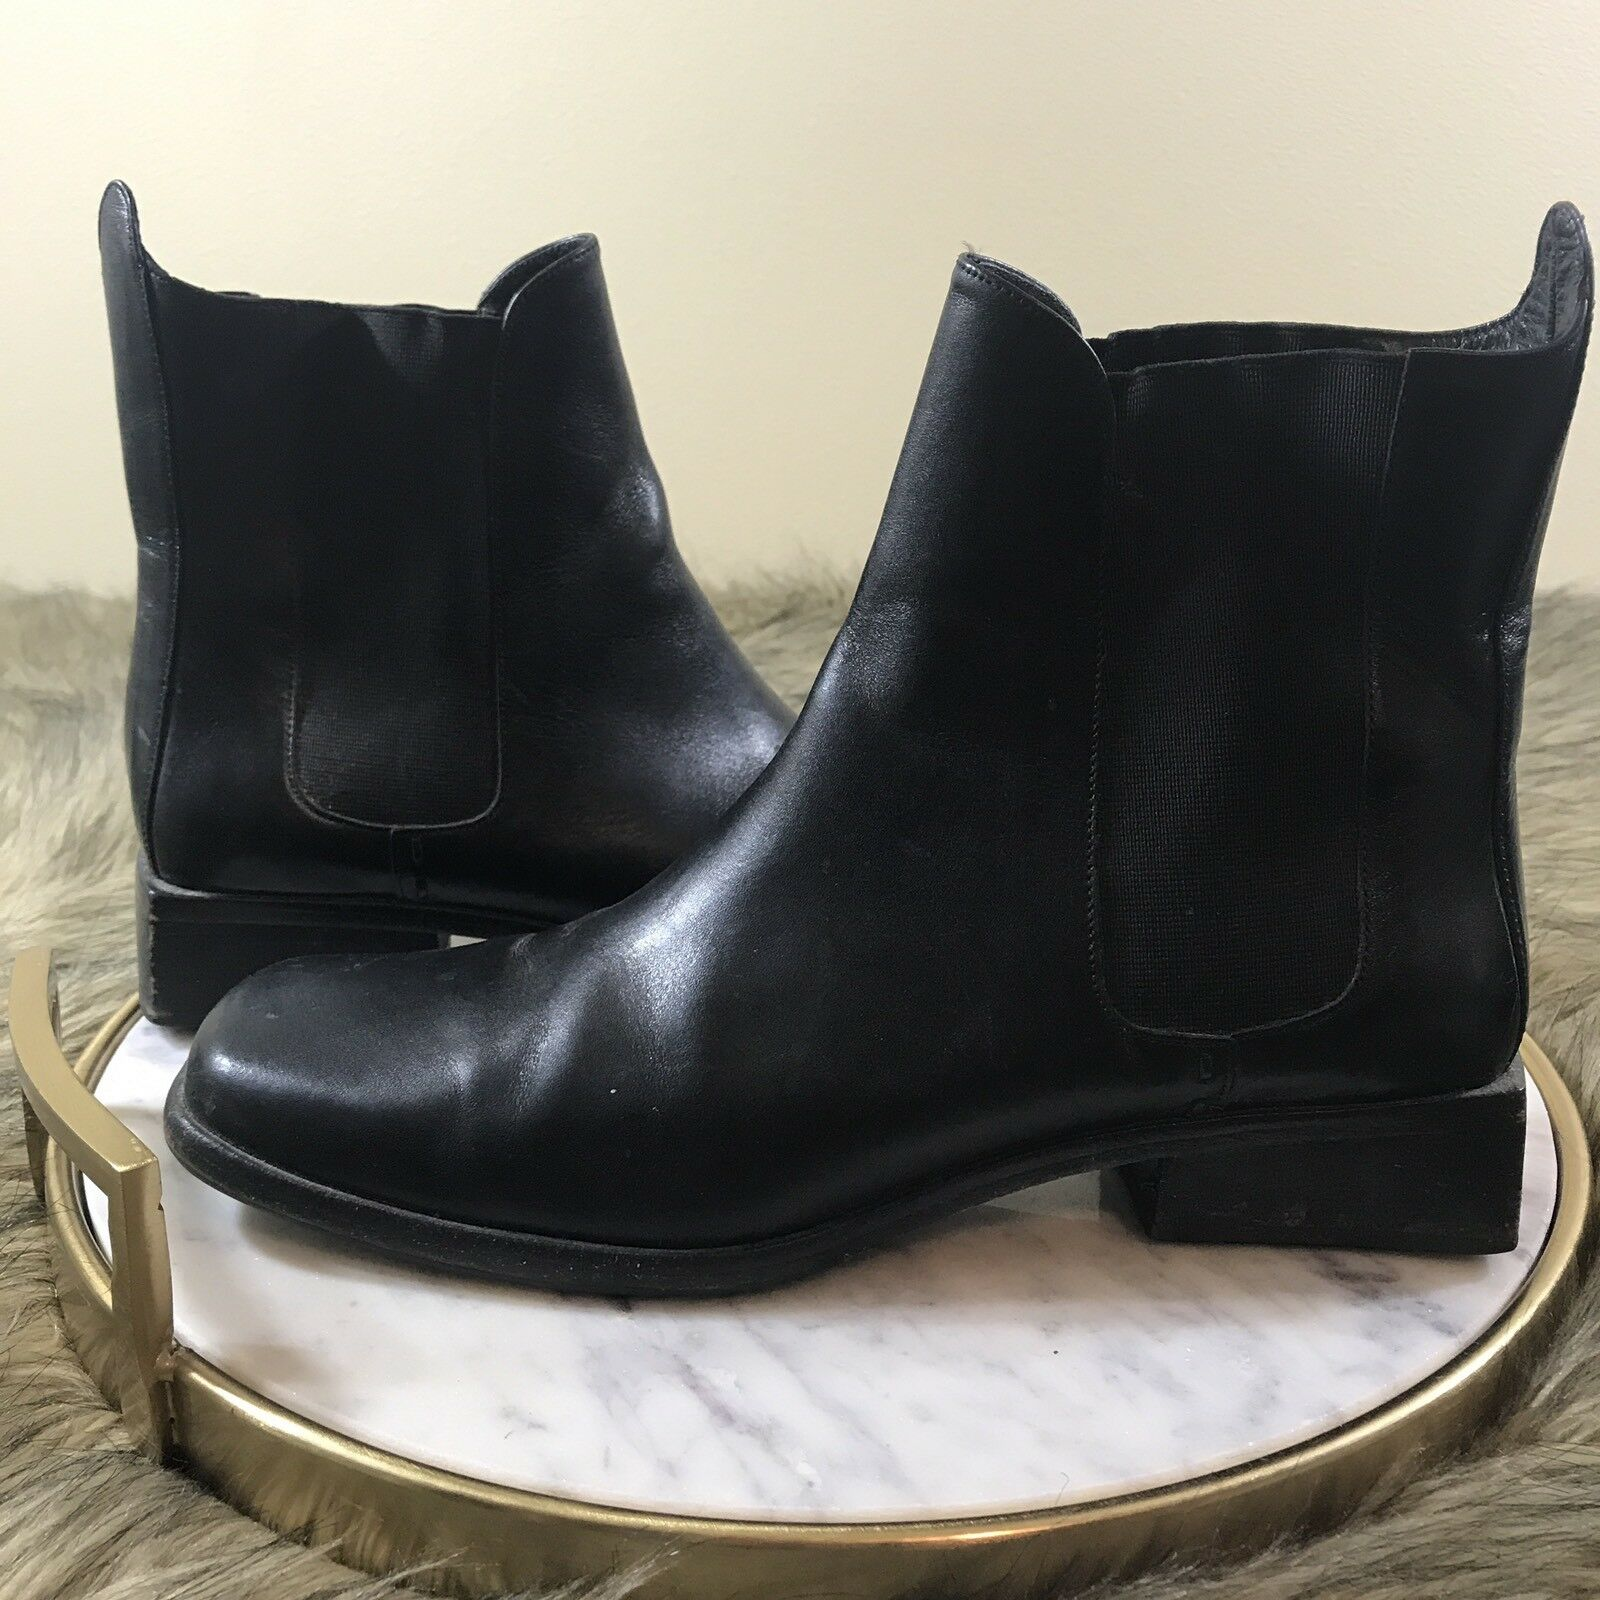 Cole Haan Women's Sz 9 Black Leather Low Block Heels Pull On Ankle Boots Booties